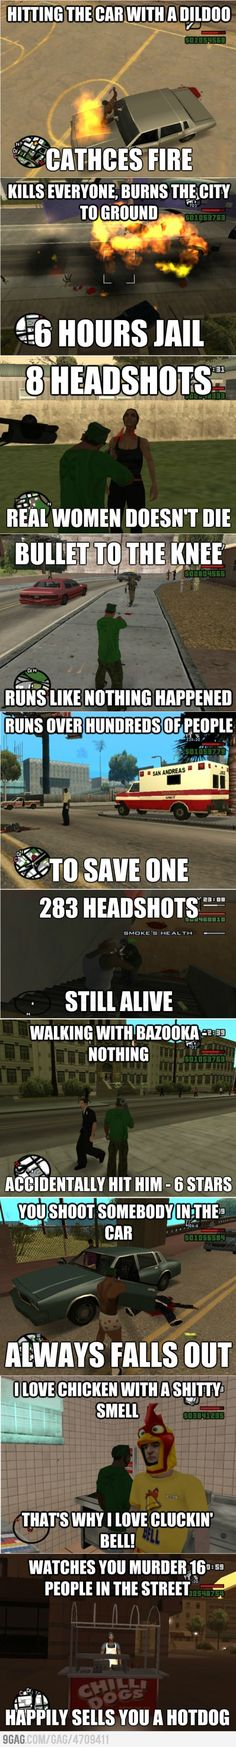 GTA SA logic...bahahhah! love this gameeee!